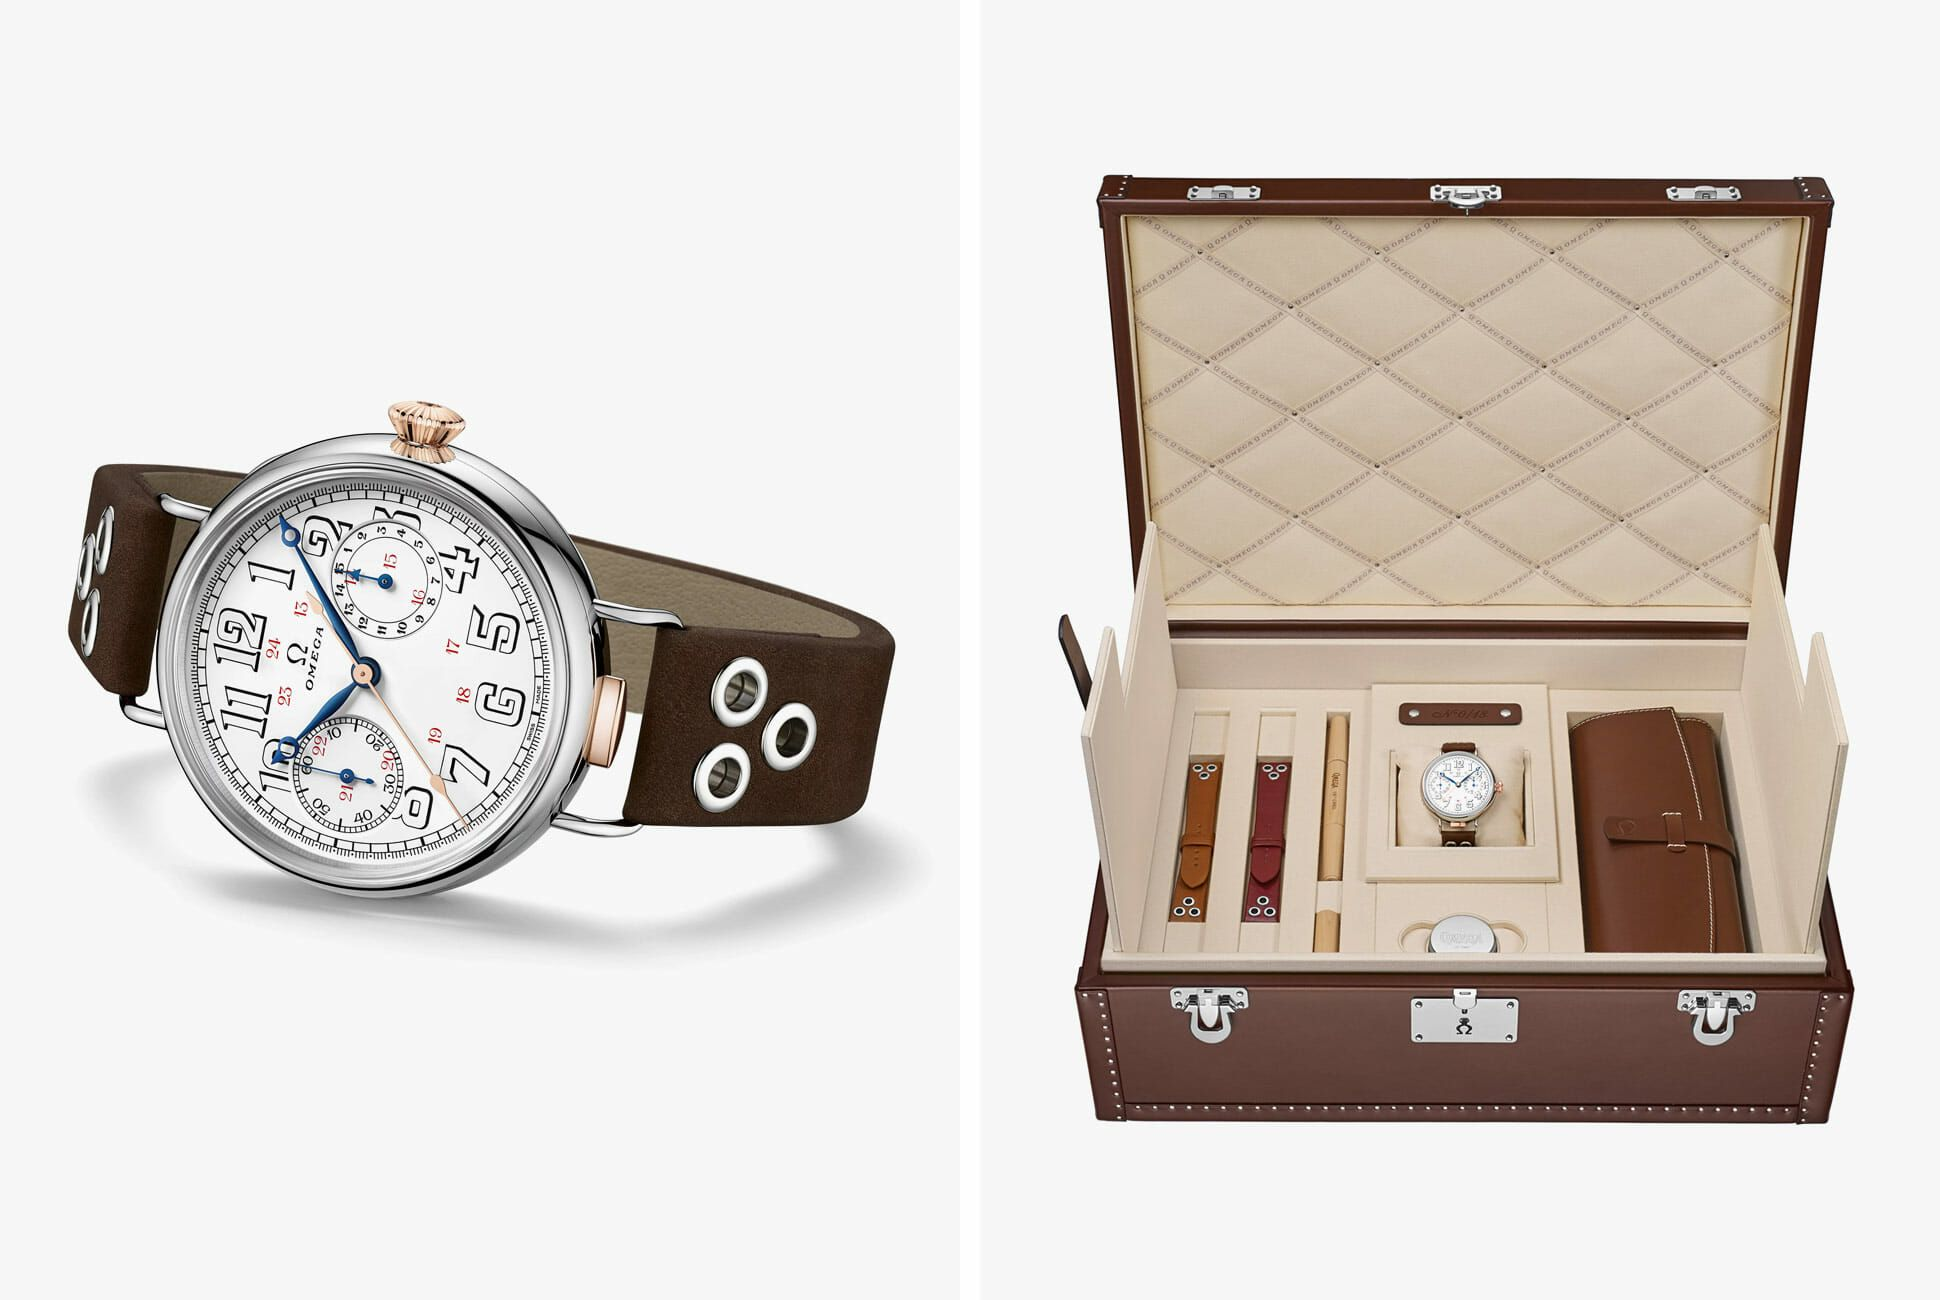 Omega-Chronograph-Limited-Edition-with-Original-Omega-Movement-gear-patrol-10